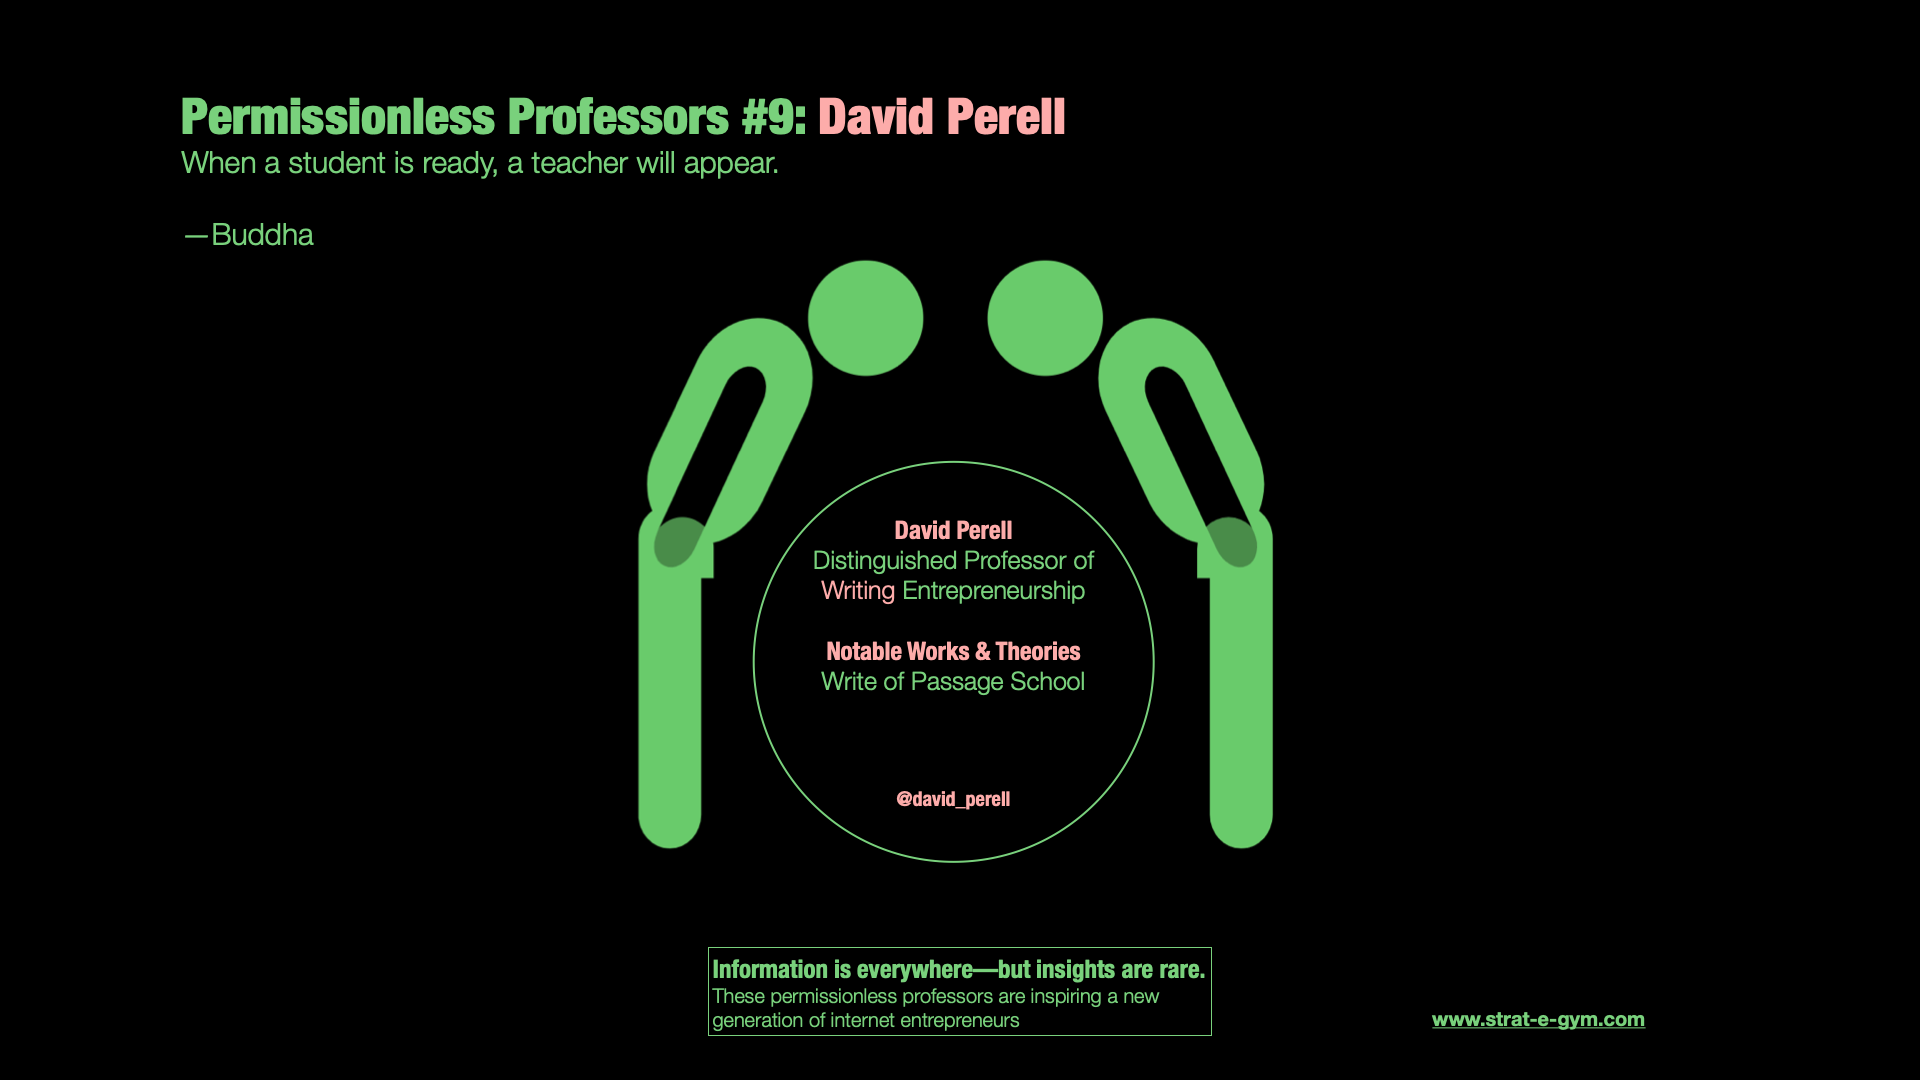 Permissionless Professors #9: David Perell